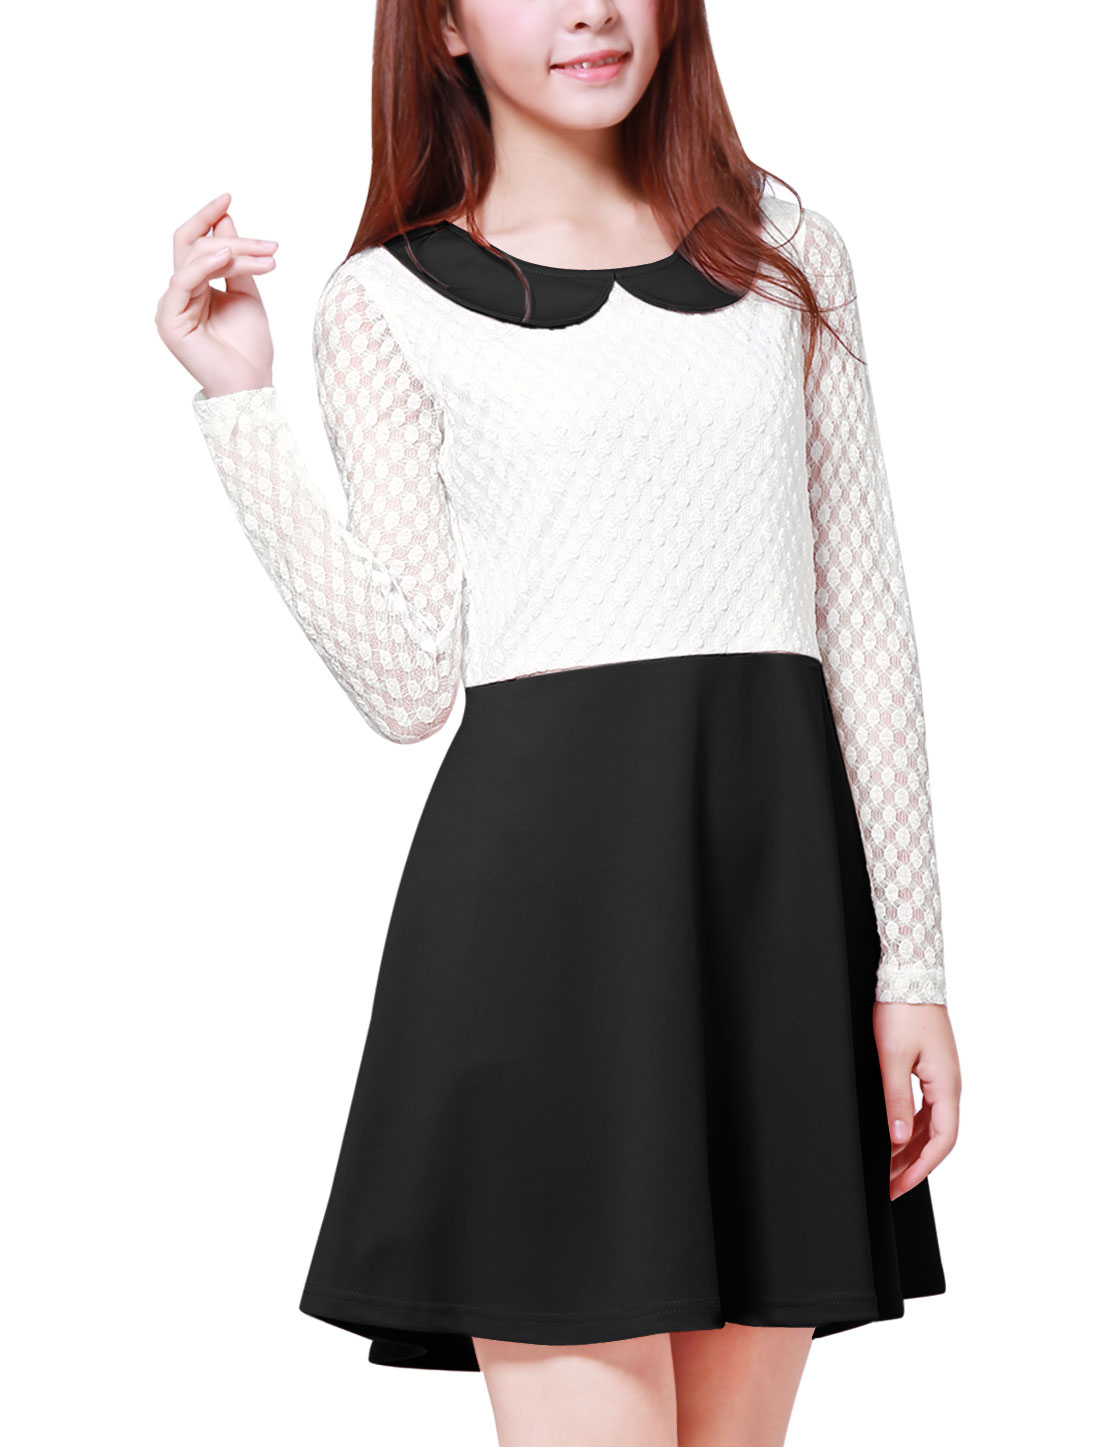 Lady Lace Mesh Panel Pullover Above Knee Dress Black L